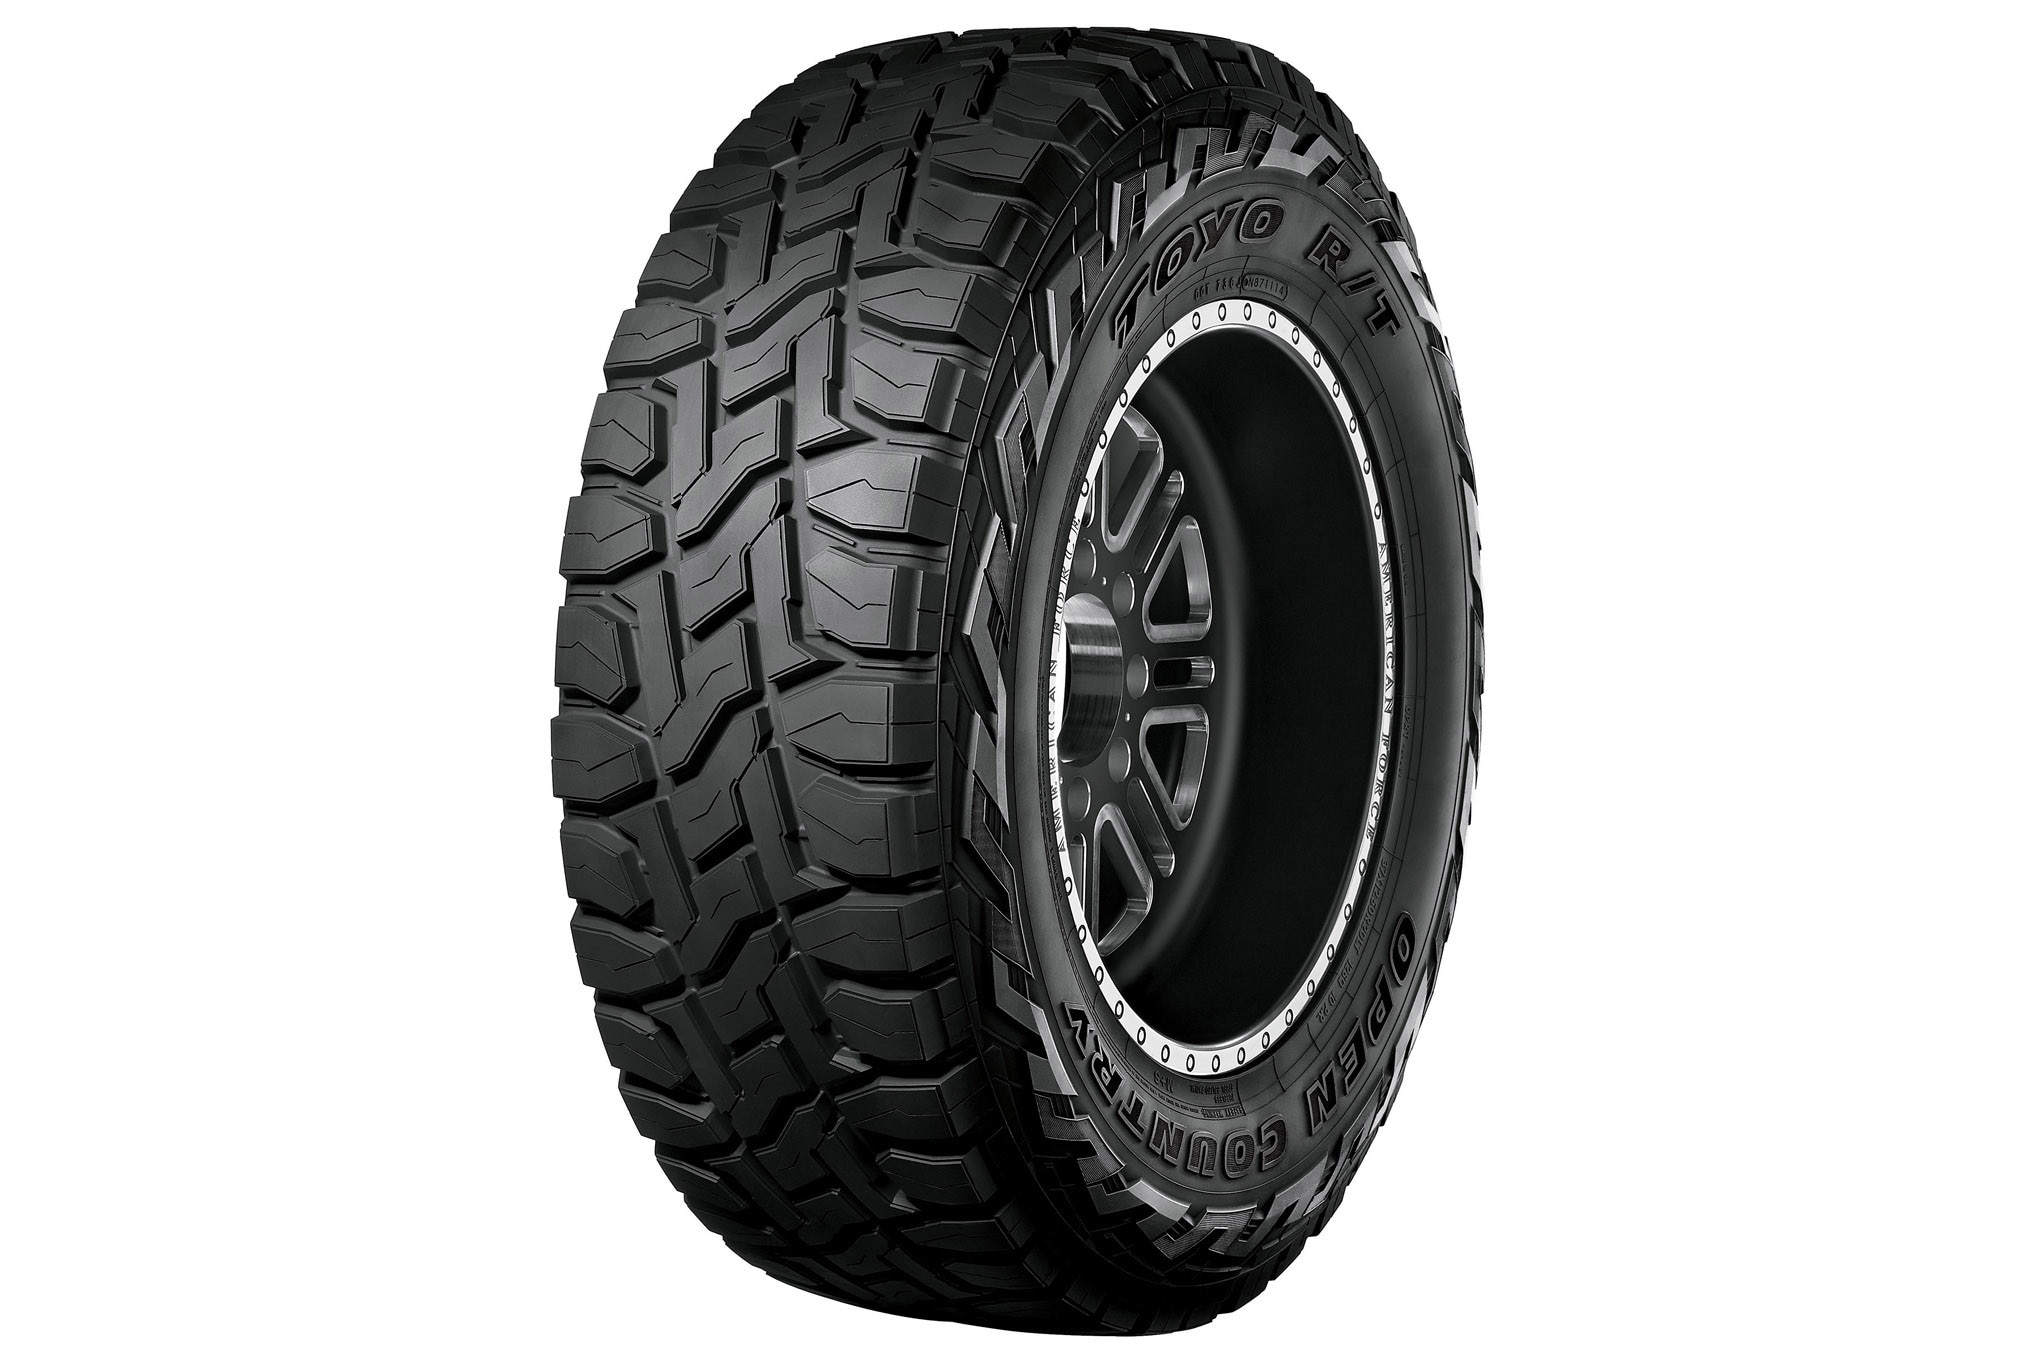 014 new tires toyo open country rt